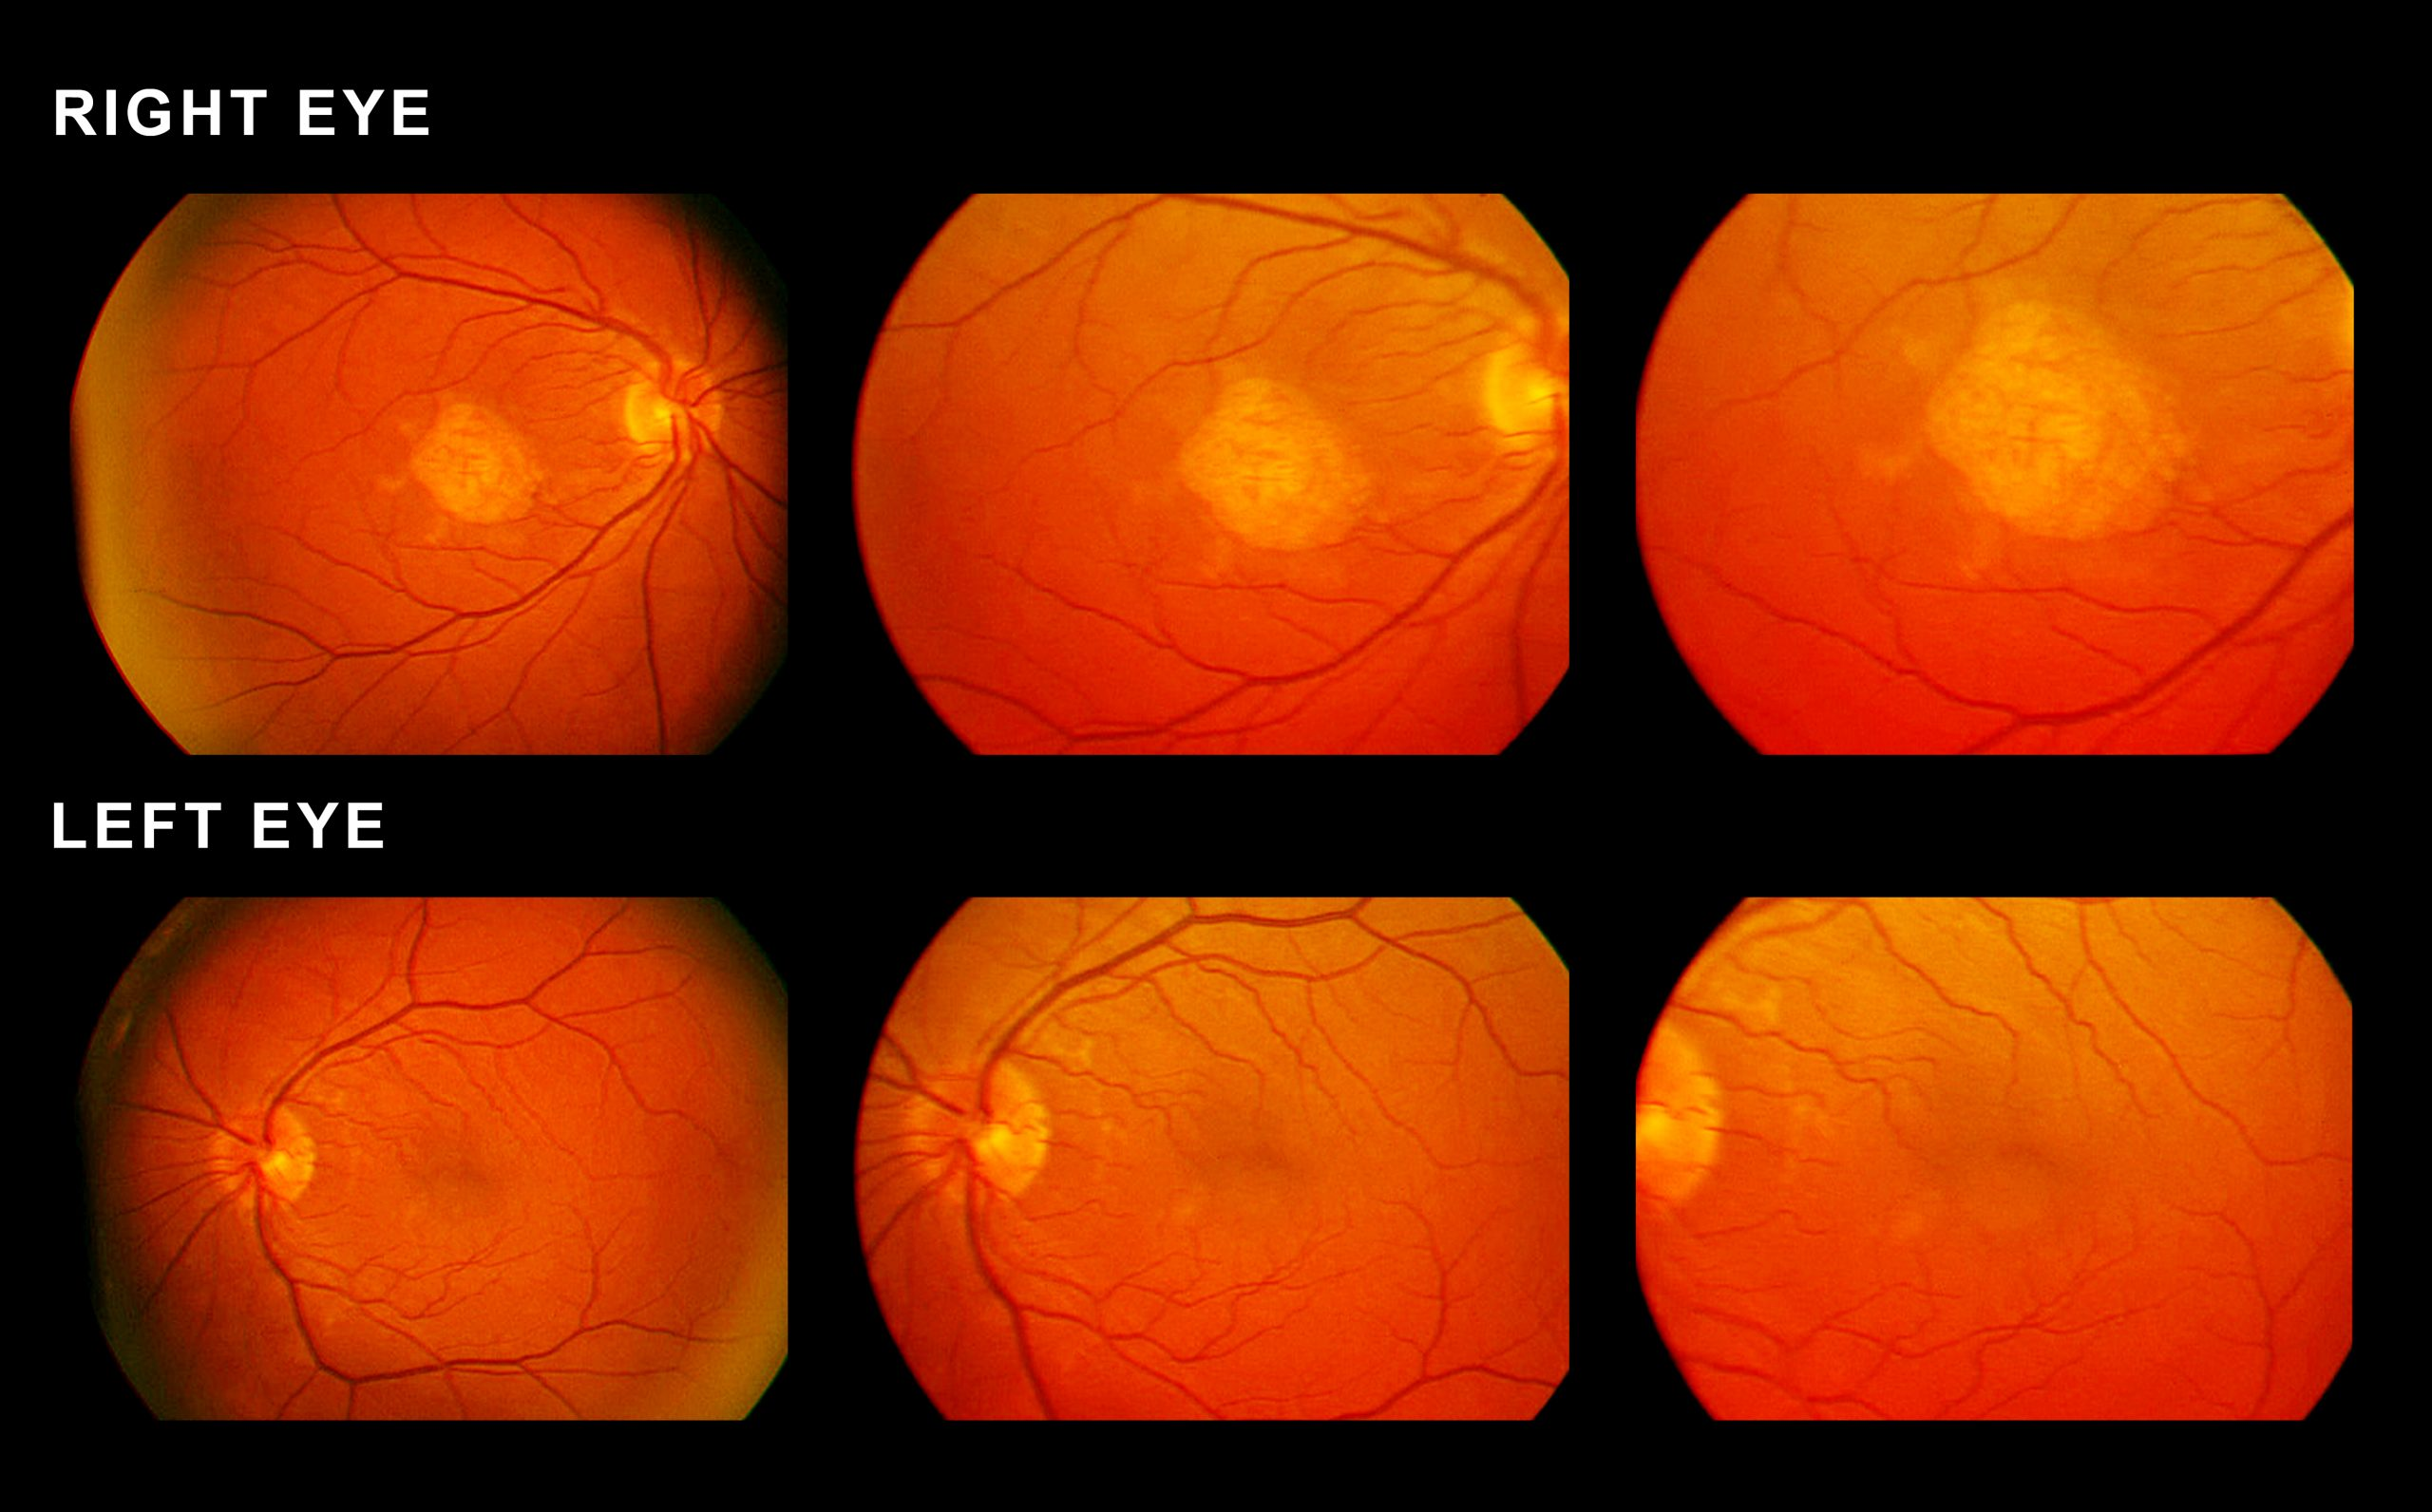 Fhr4 Protein Found Strongly Linked To Amd